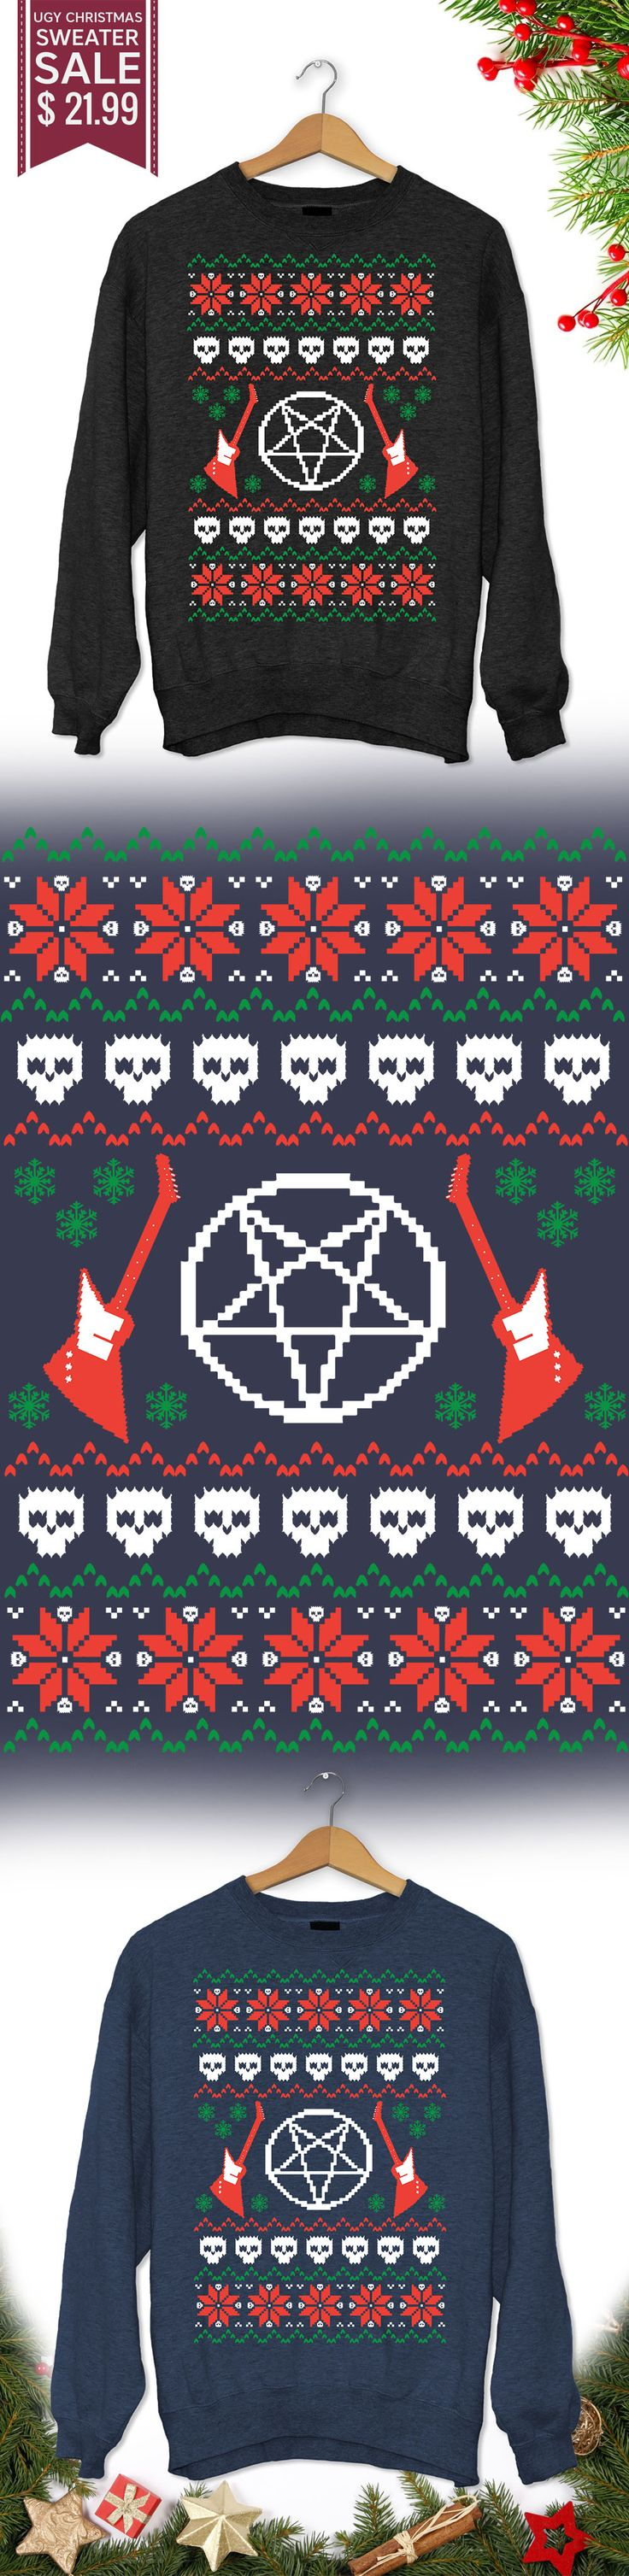 Heavy Metal Christmas Sweater - Get this limited edition ugly Christmas Sweater just in time for the holidays! Buy 2 or more, save on shipping!